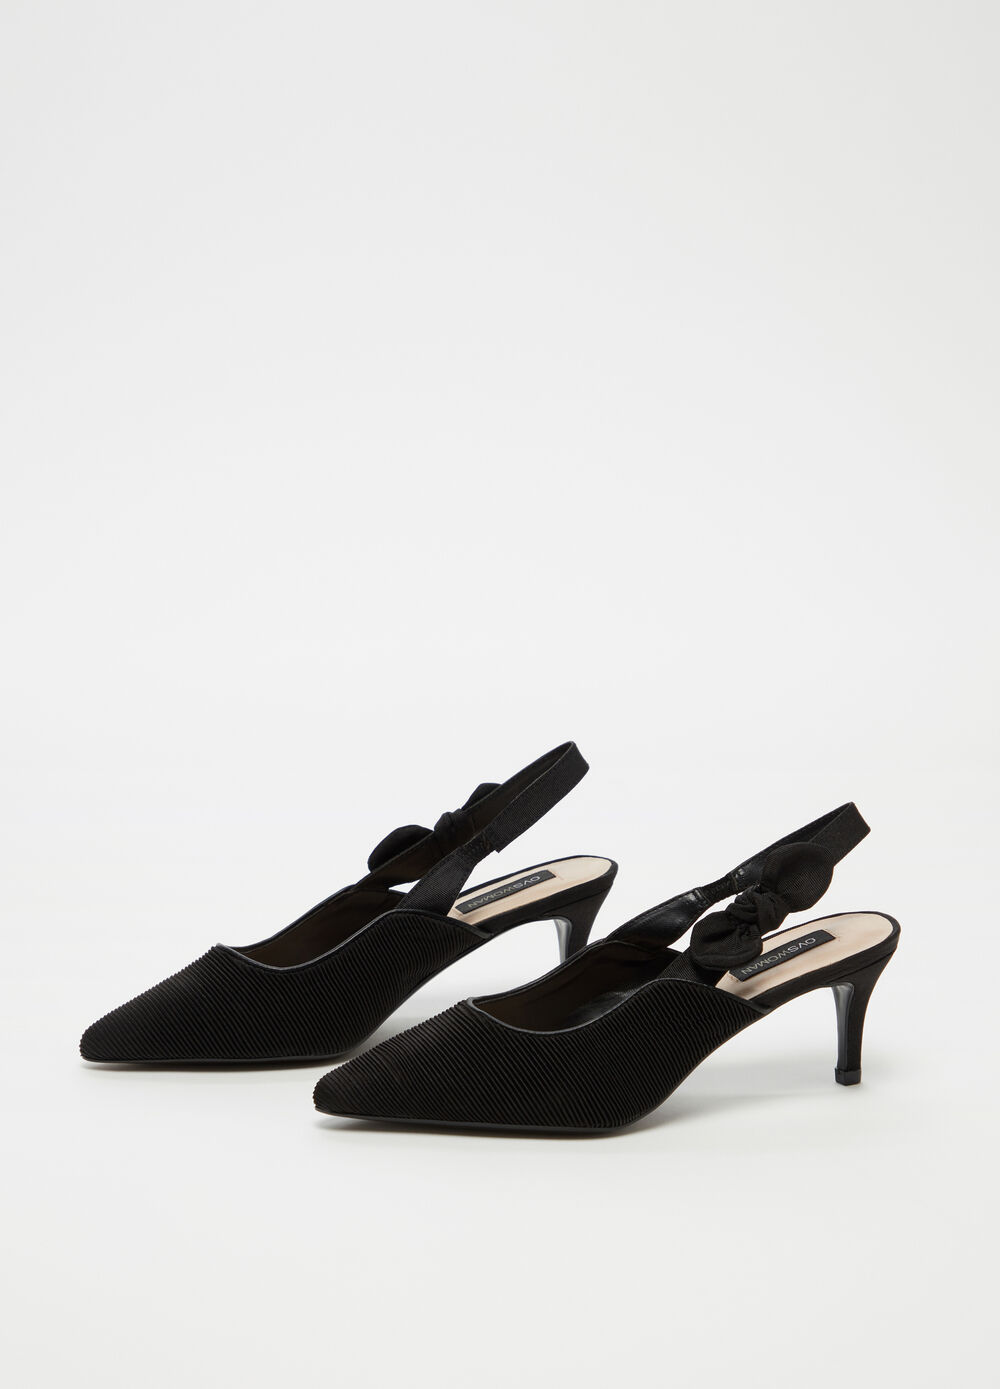 Fabric slingback with strap and bow on the side and average heel